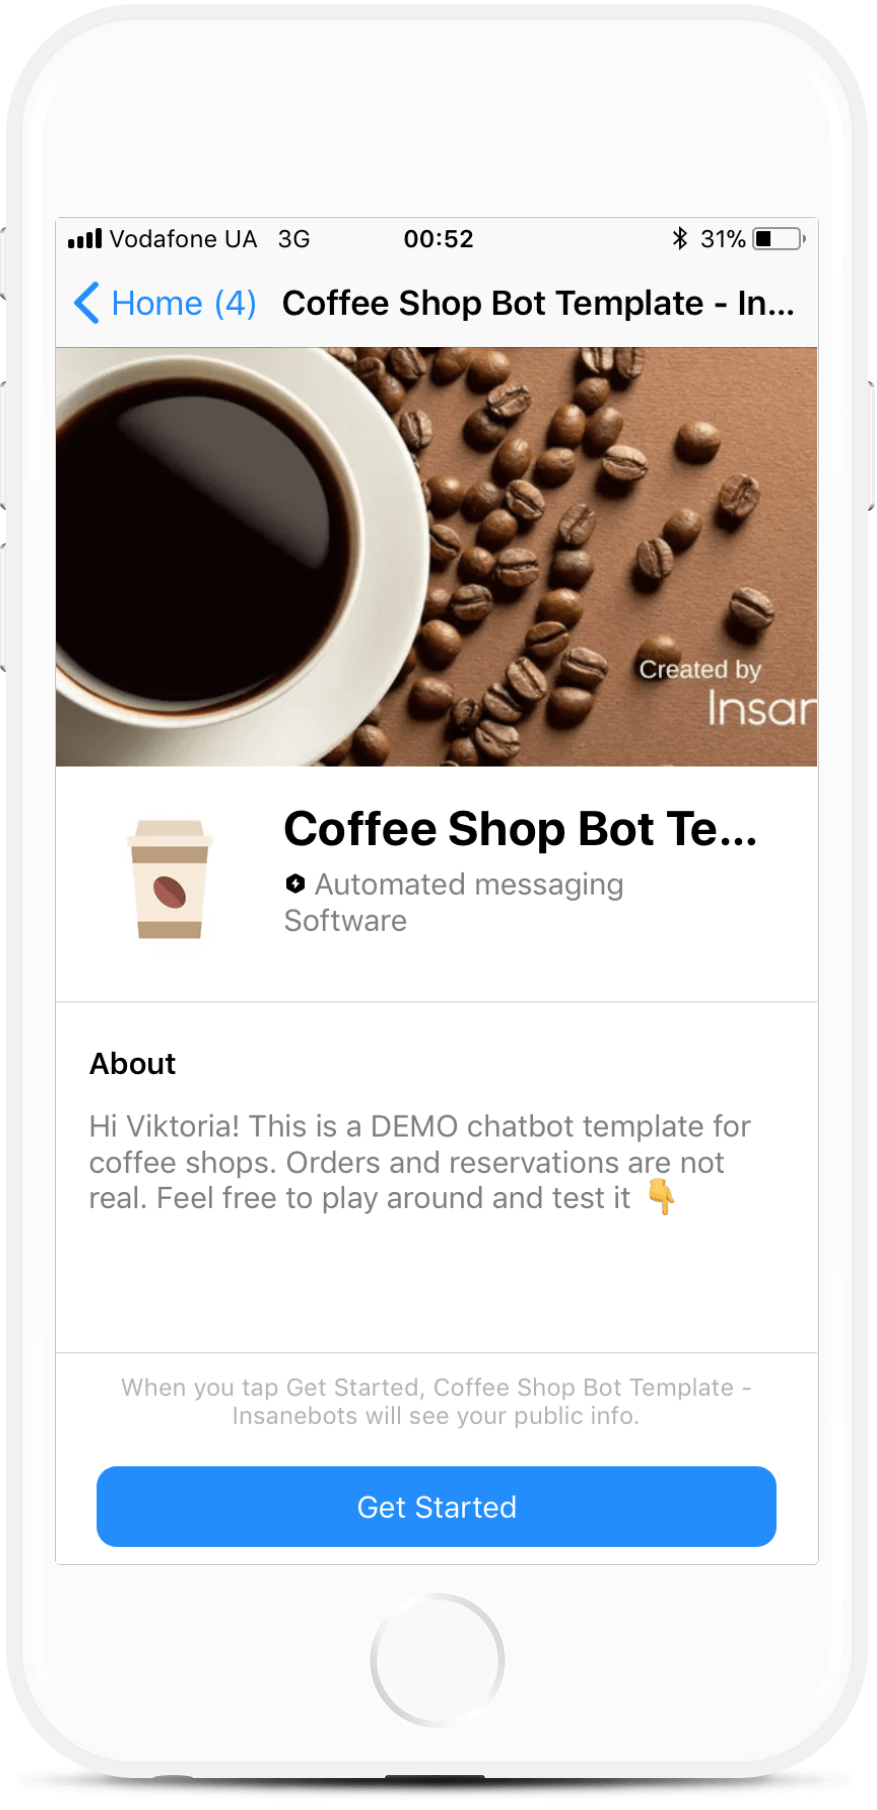 Coffee Shop Bot Template